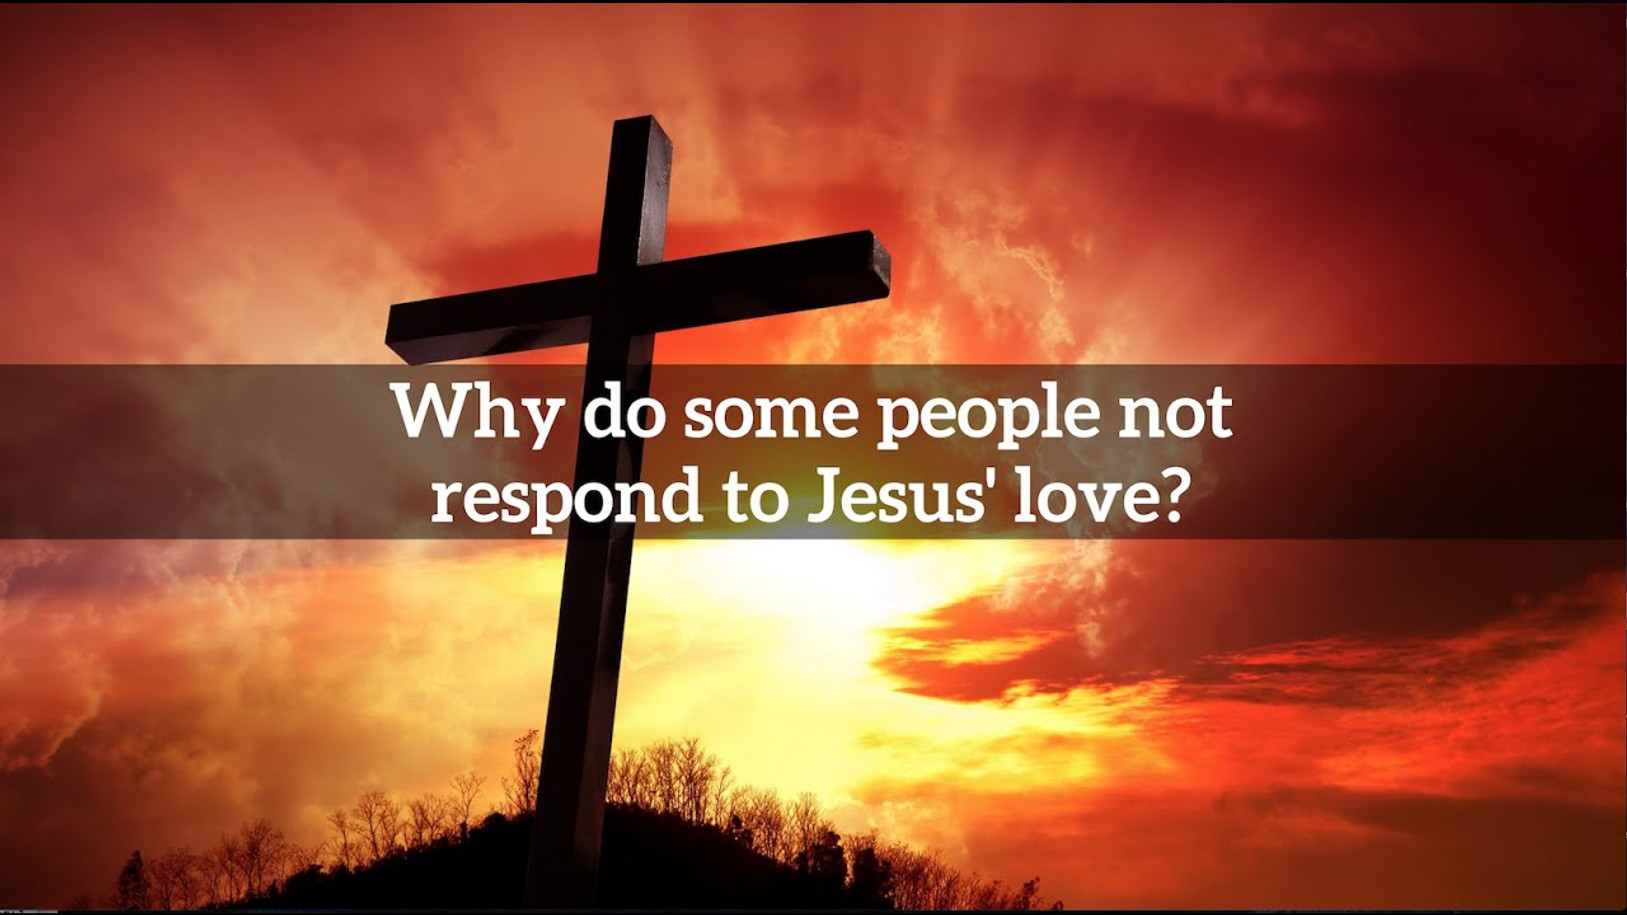 Why do some people not respond to Jesus' love?